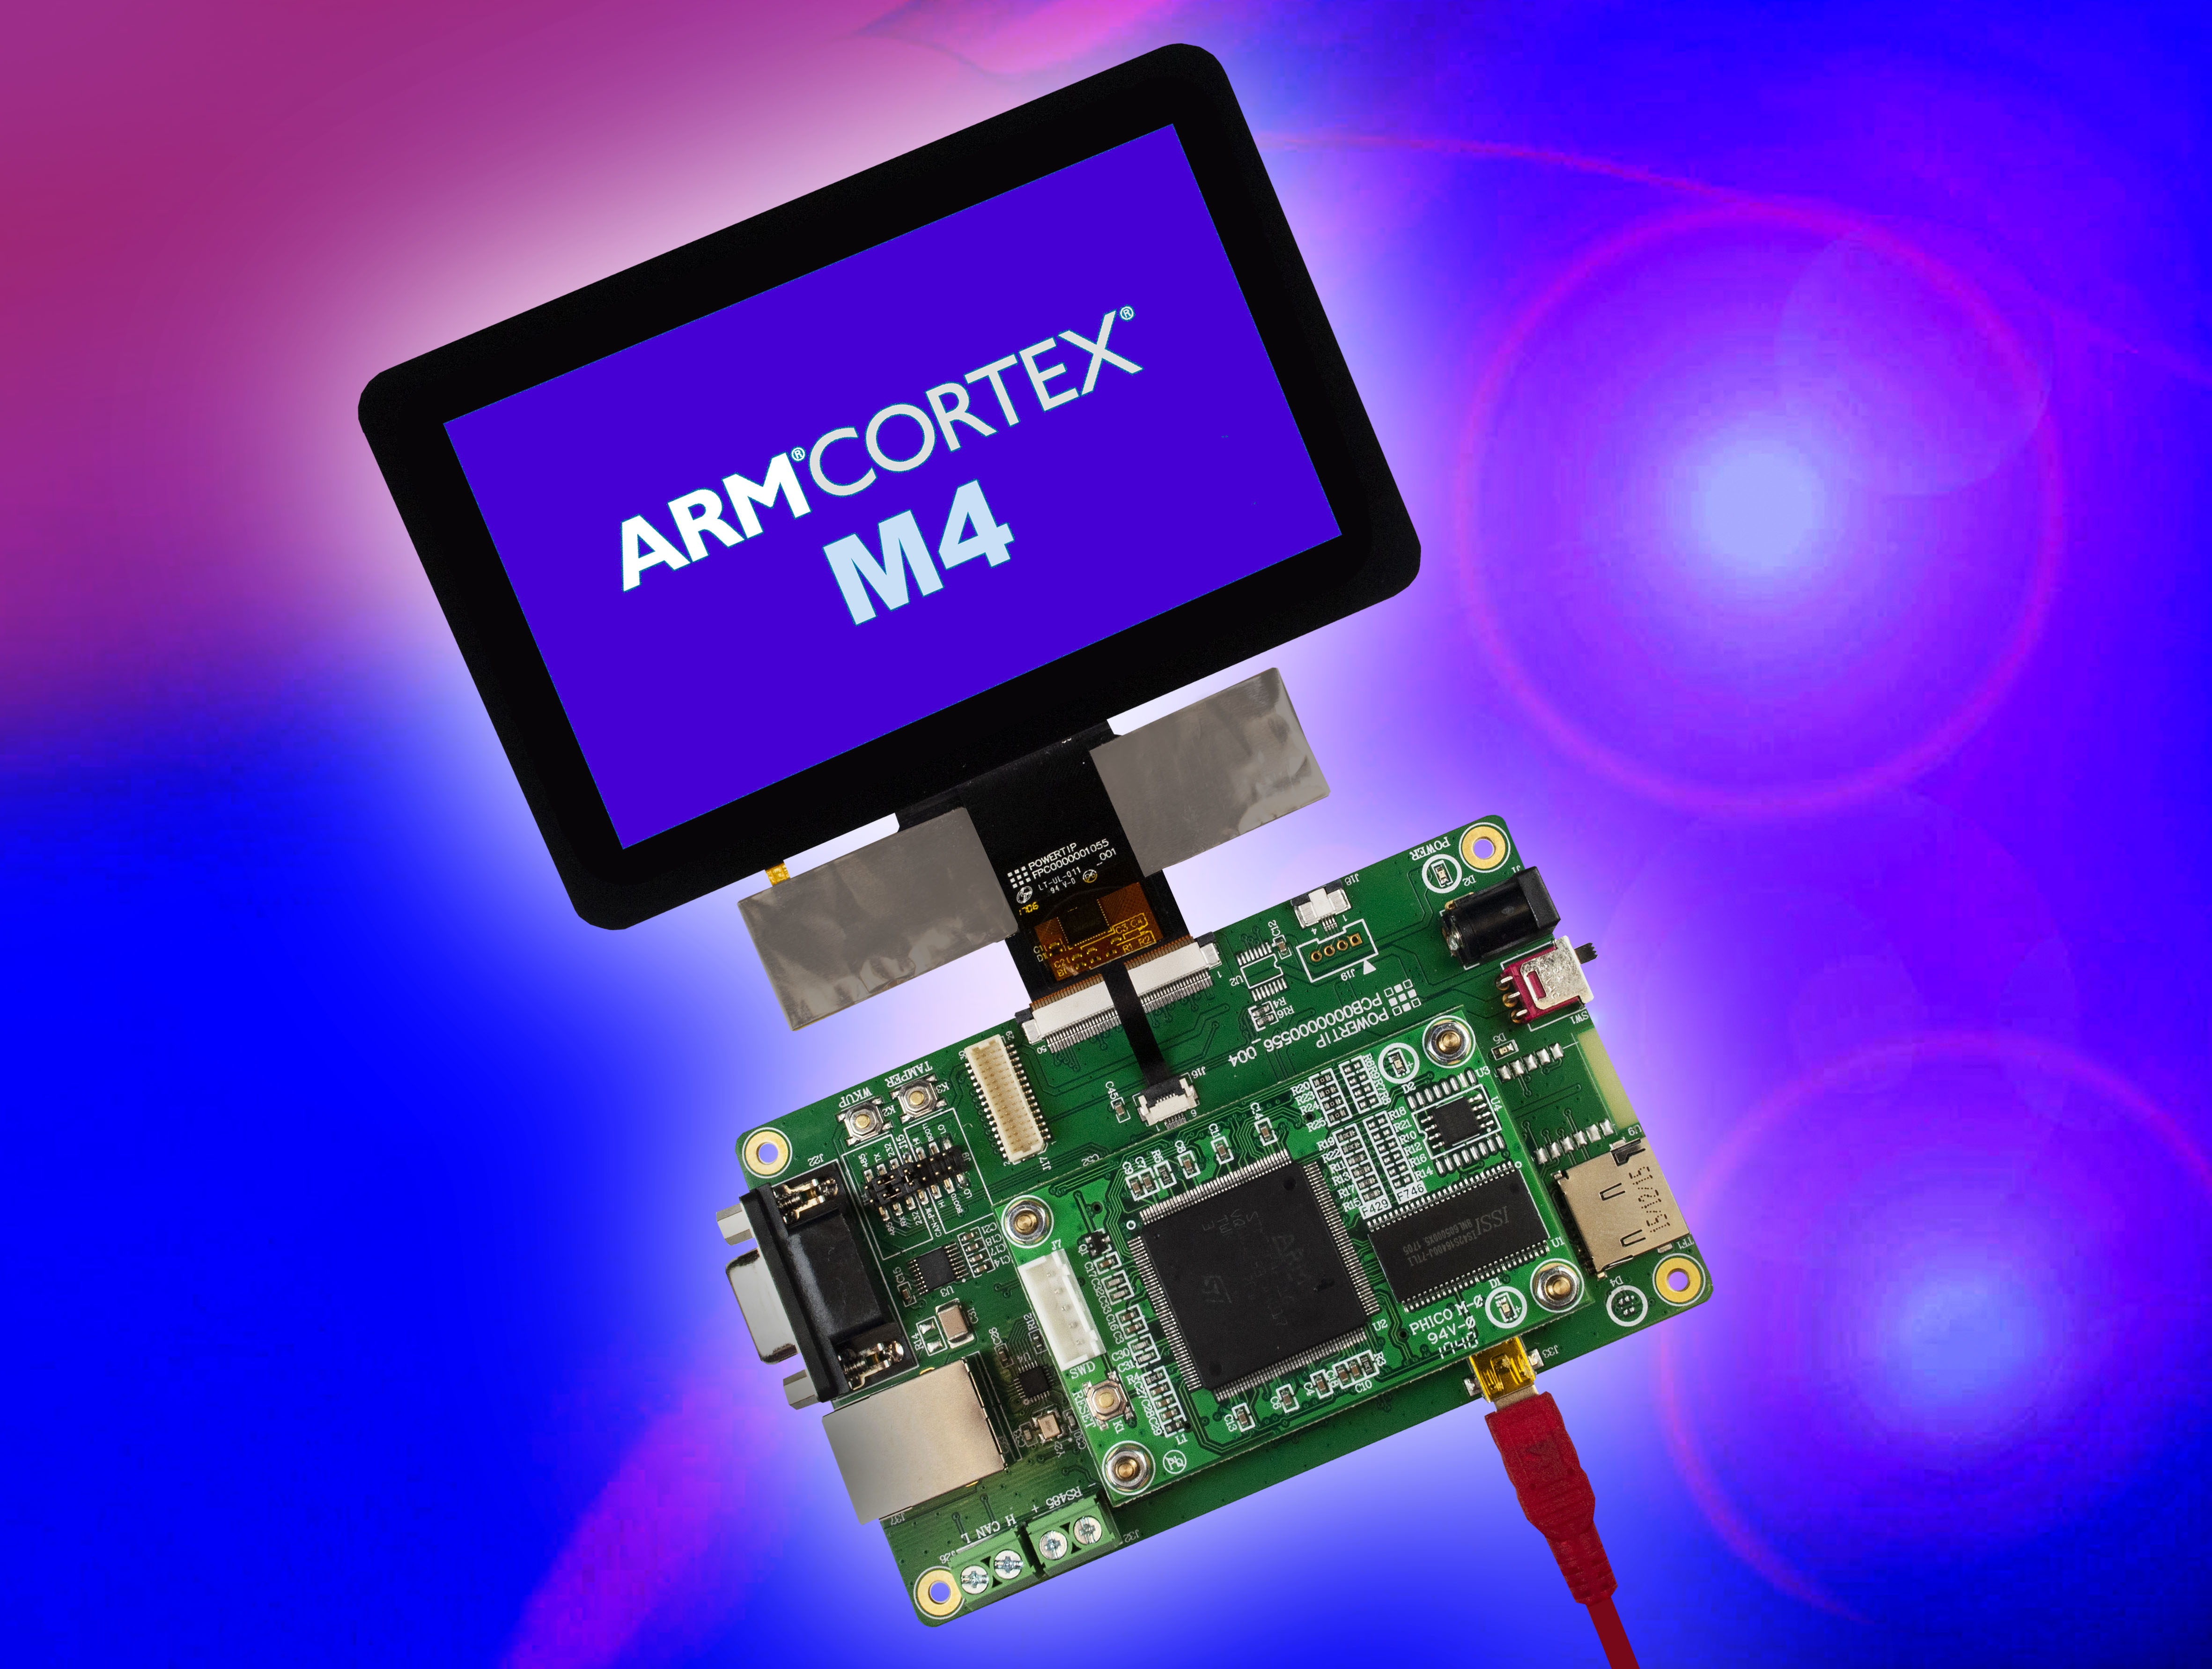 Development Time Slashed for Cortex-M4 Applications using Displays